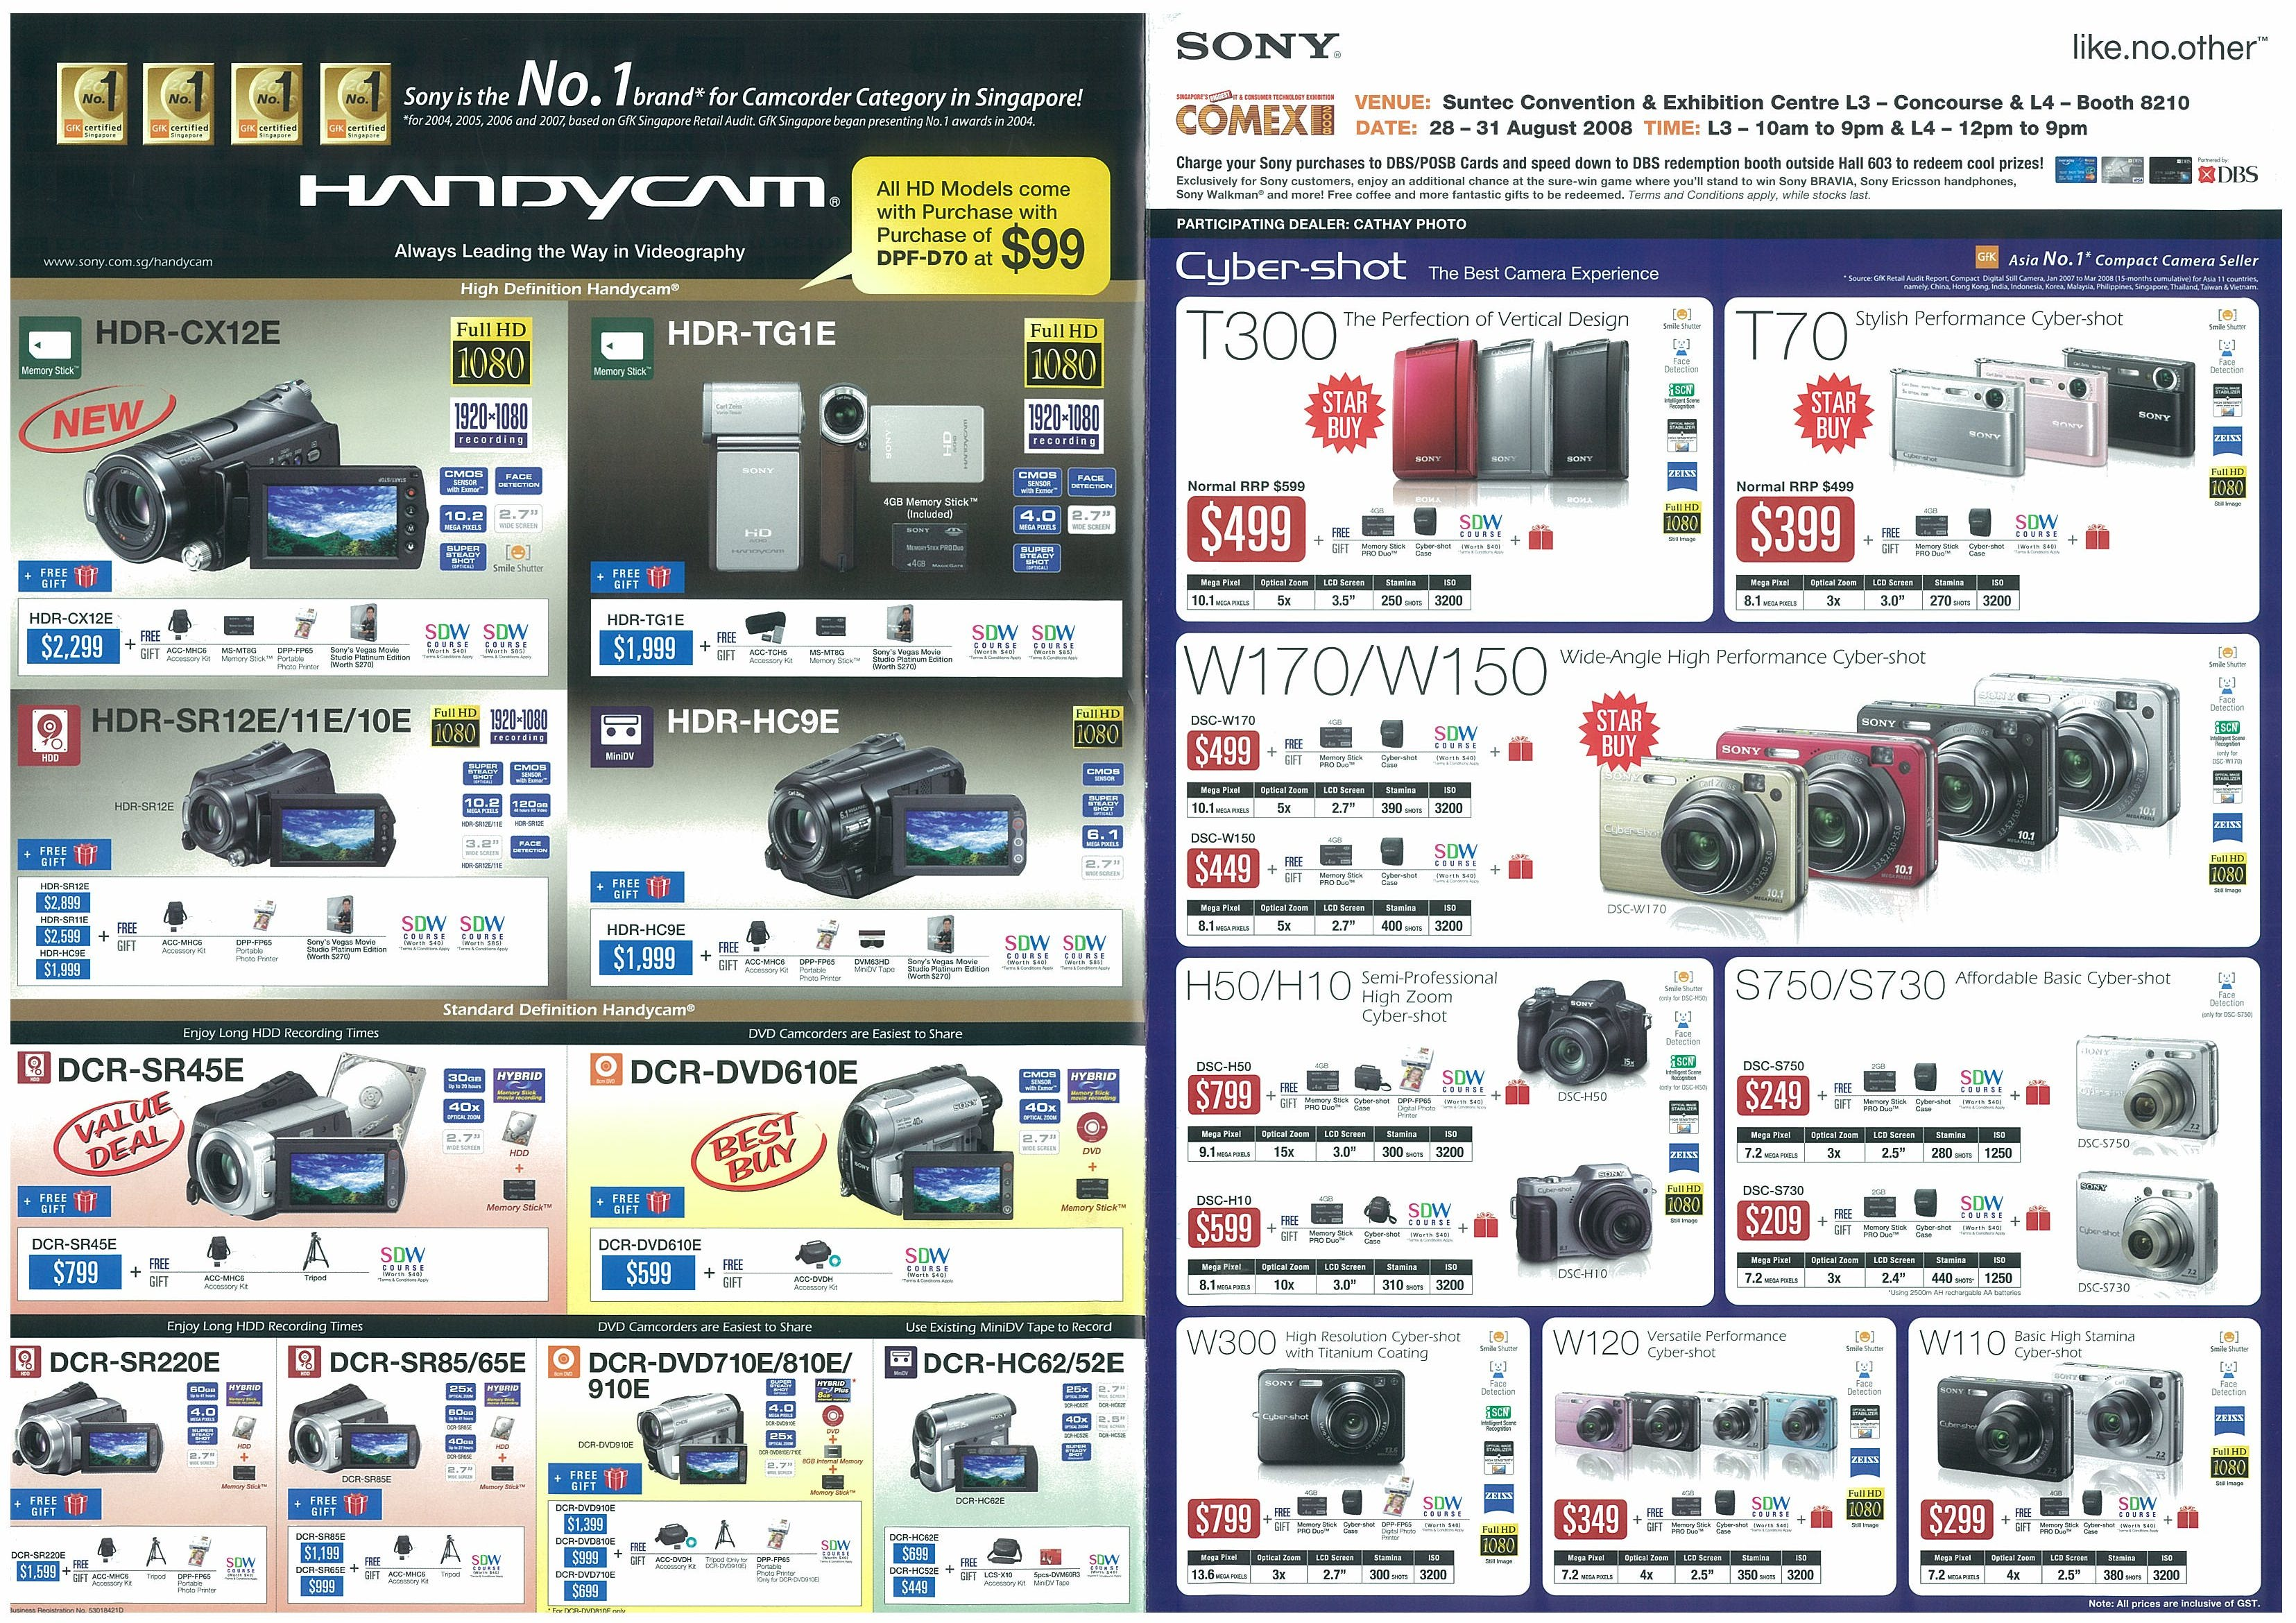 Comex 2008 price list image brochure of Sony Handycam Page 1